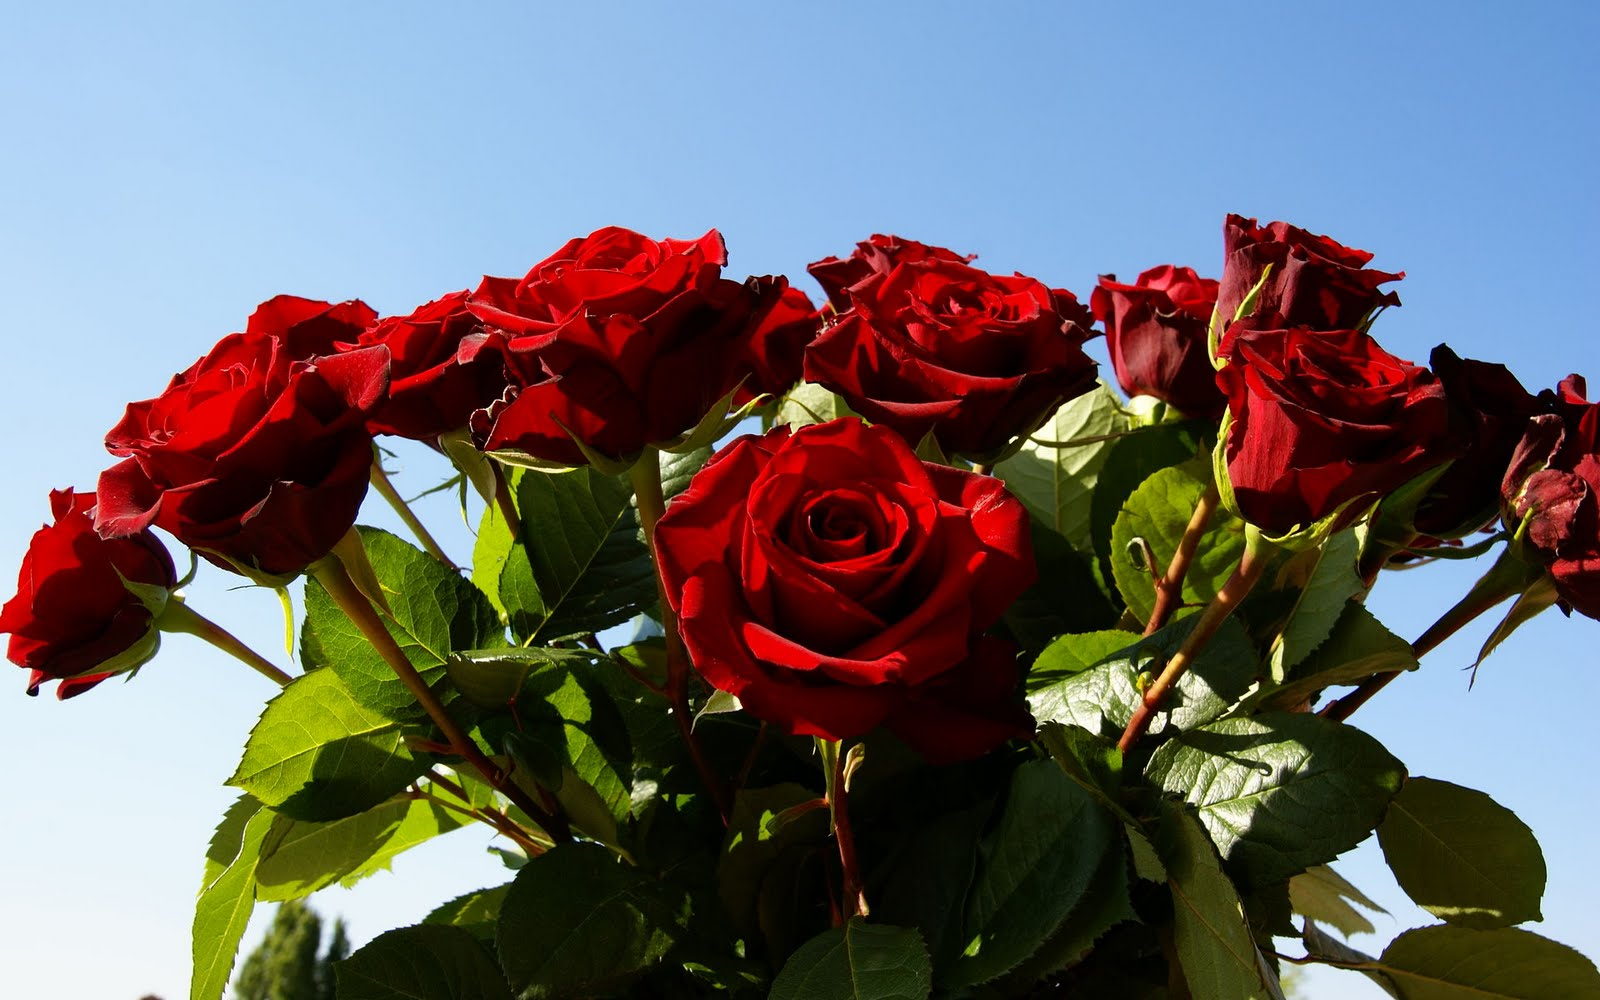 free flowers photo and wallpapers red rose flowers pictures, Natural flower